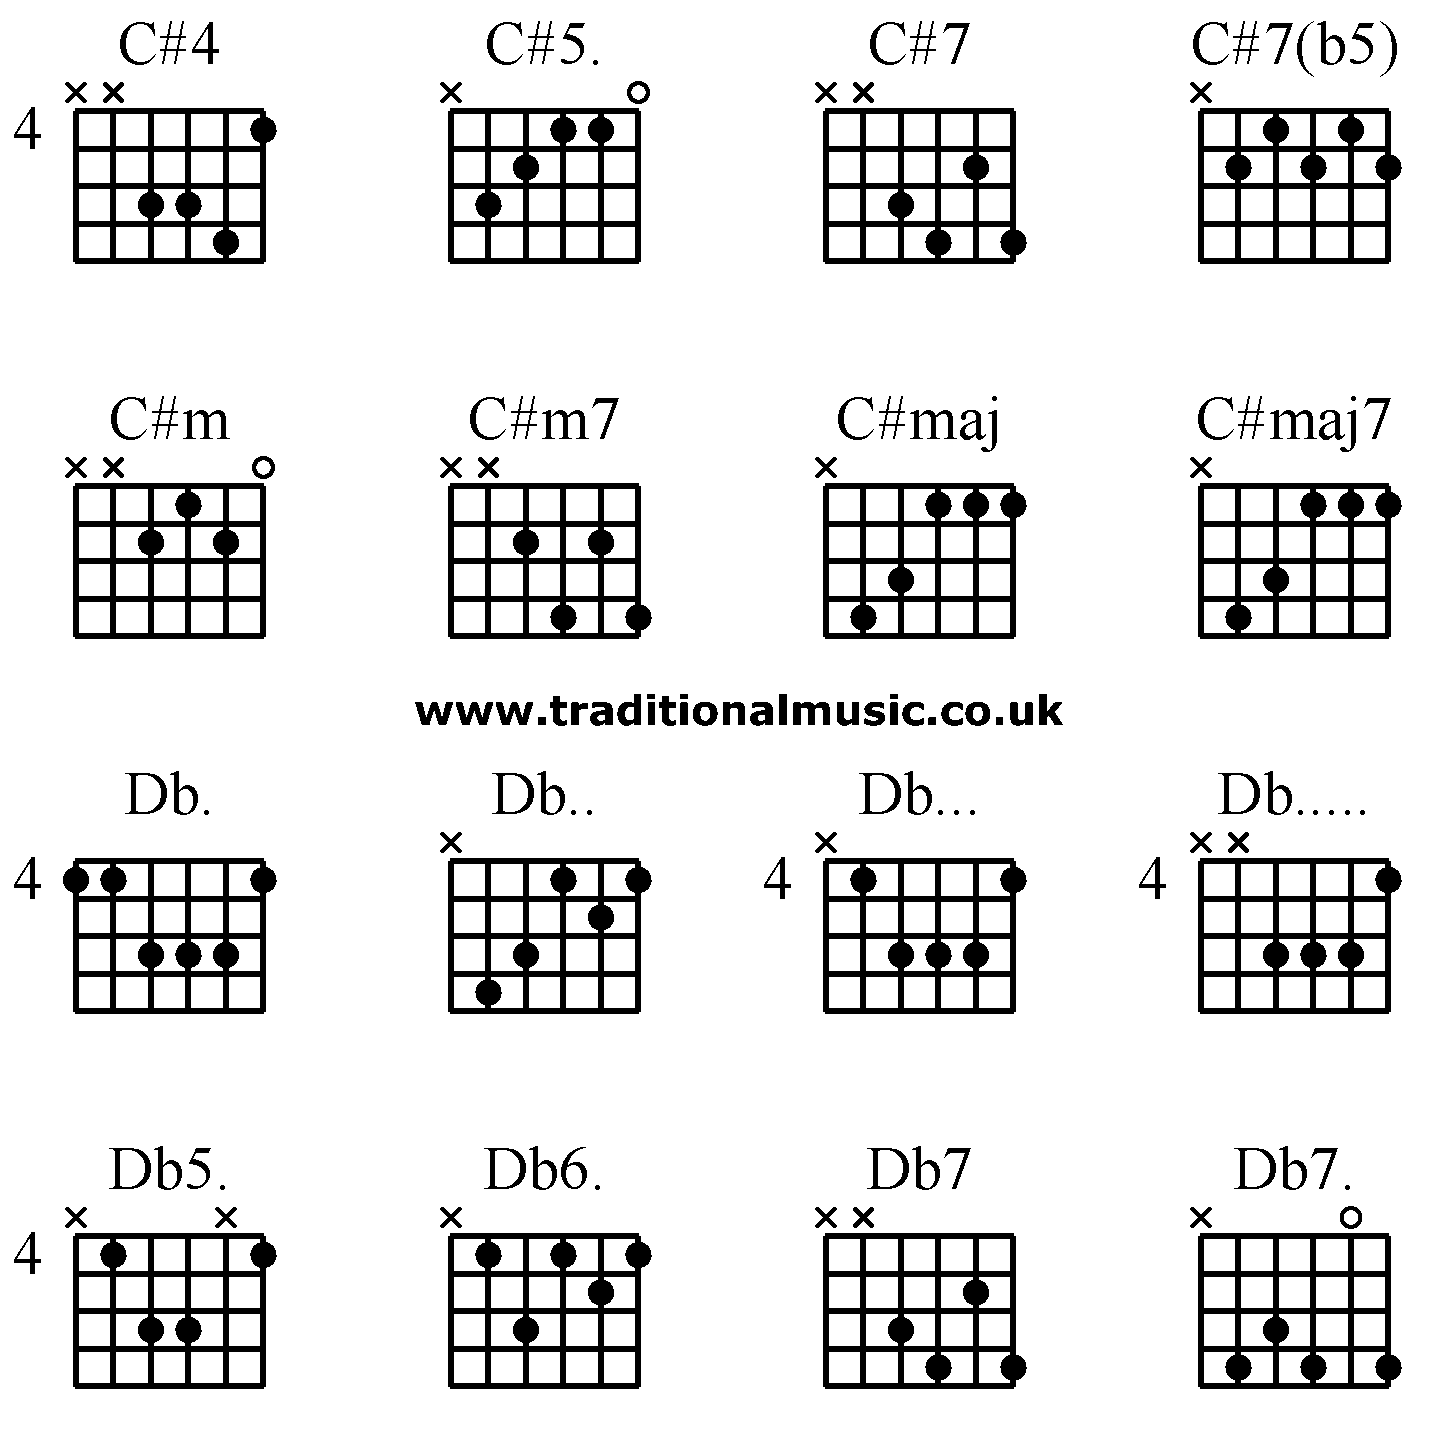 guitar chords advanced c 4 c 5 c 7 c 7 b5 c m c m7 c maj c maj7